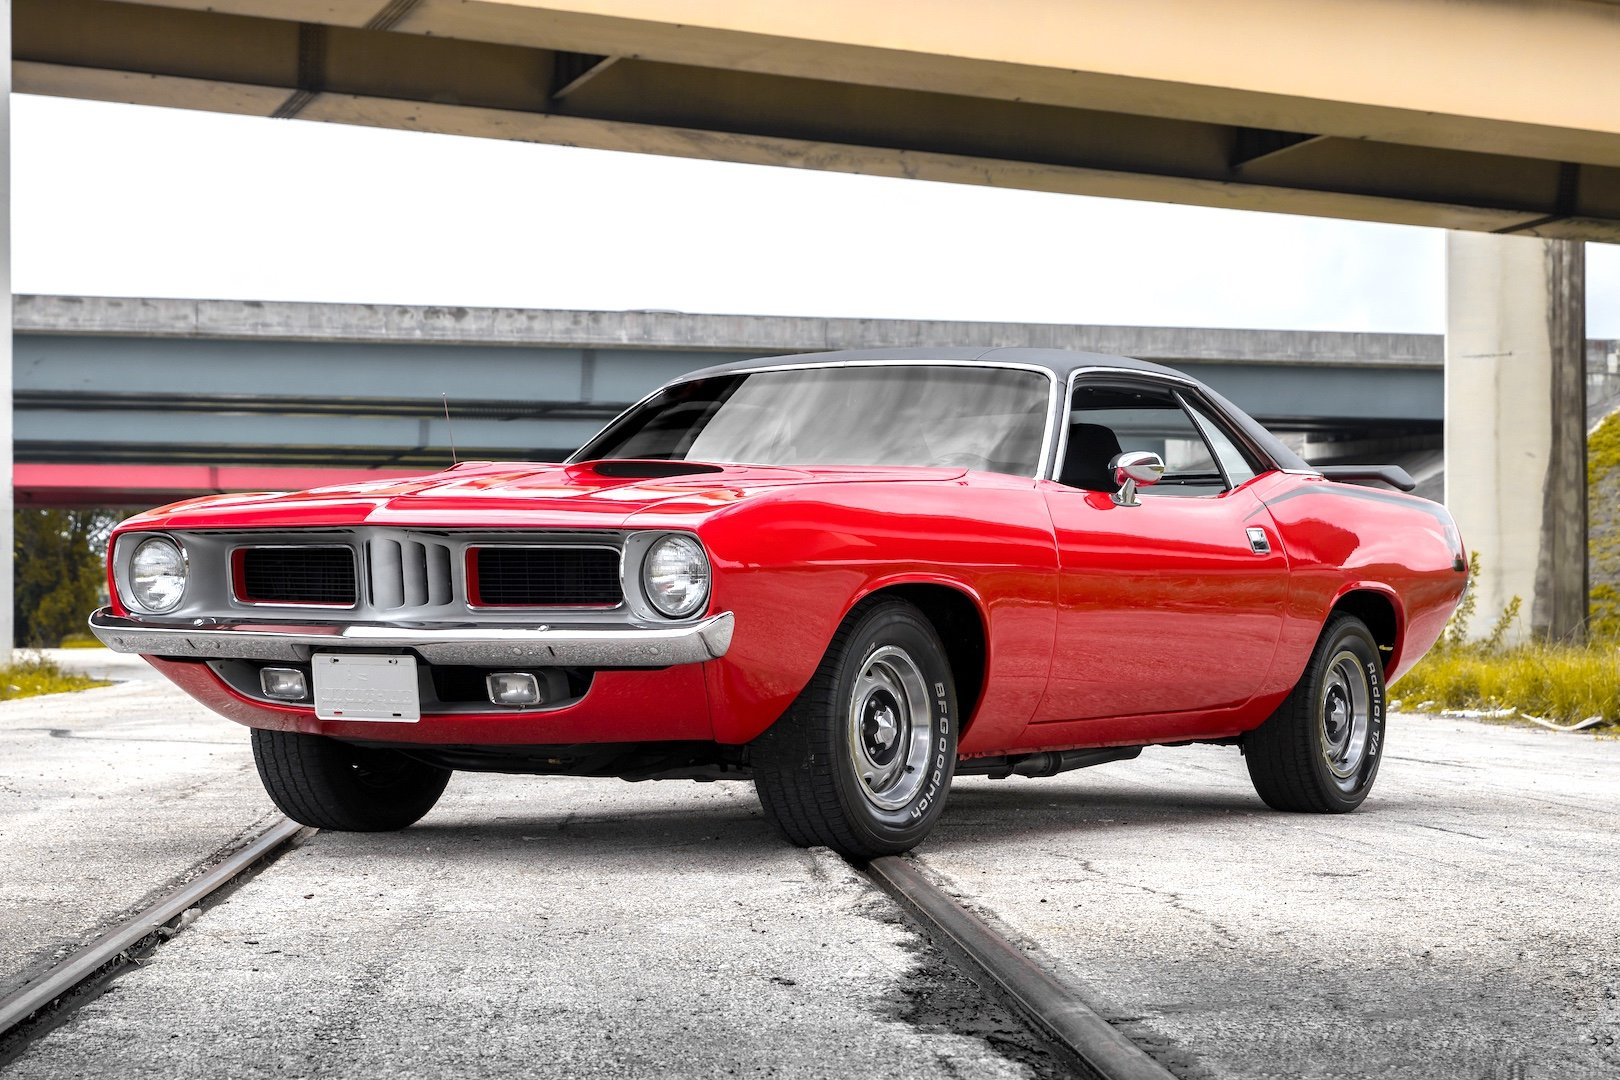 1973 Plymouth Barracuda 440 Big Block - FULLY RESTORED For Sale (picture 1 of 6)